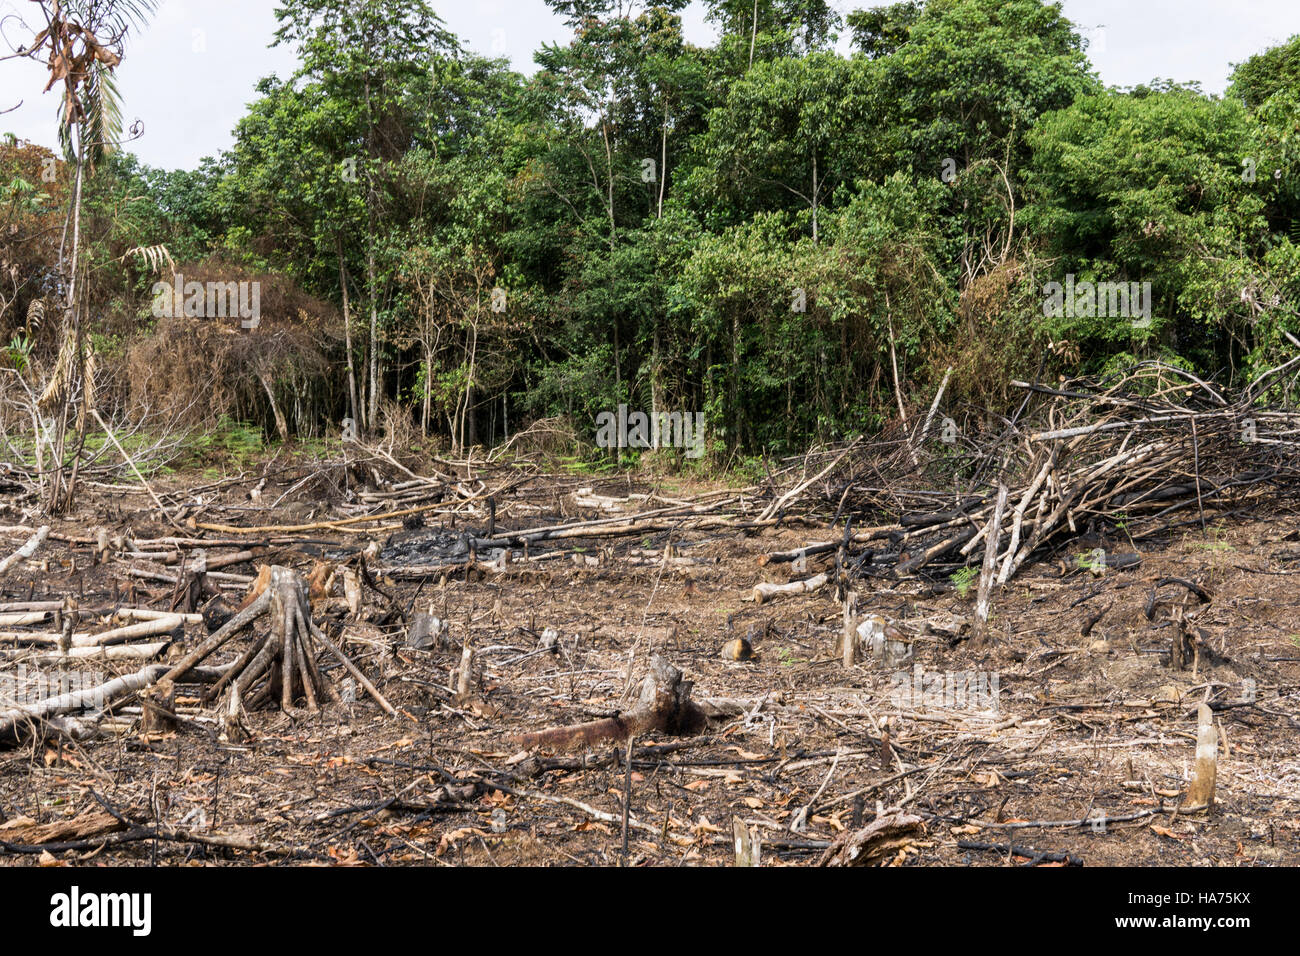 Deforestation in the Amazon jungle.Huanuco department